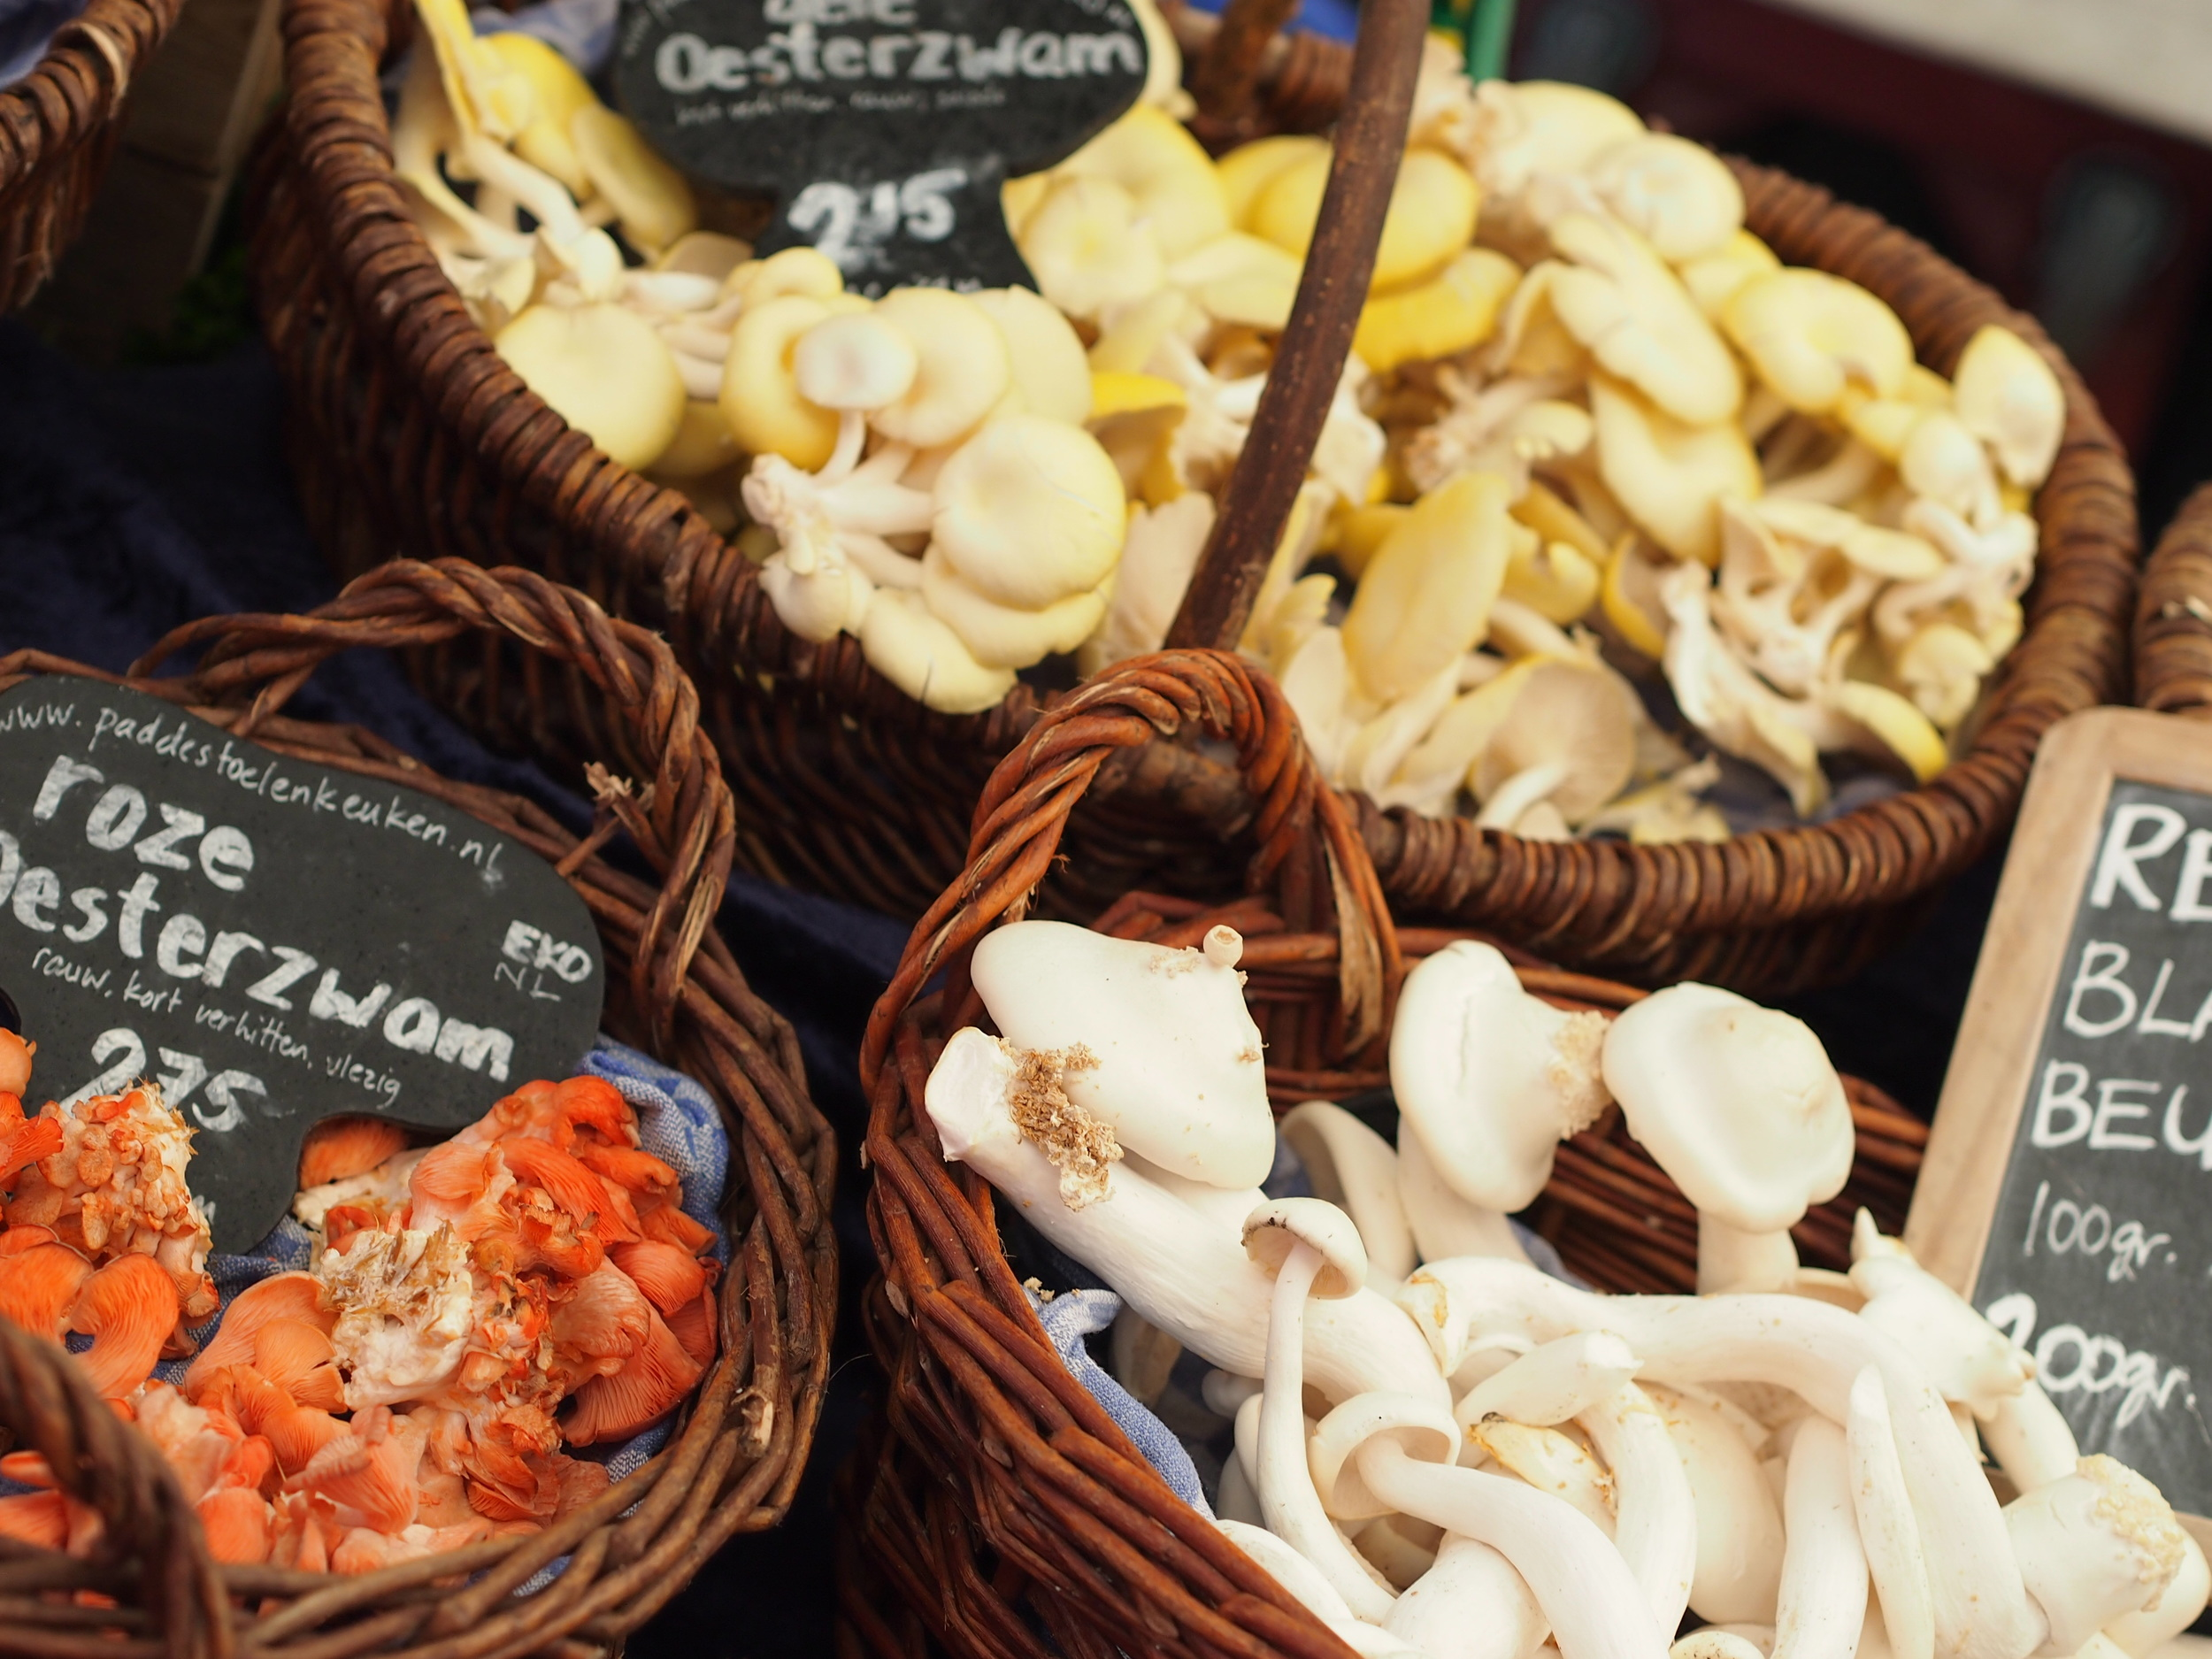 The mushroom and cheese offerings were the highlight of this Amsterdam market visit.